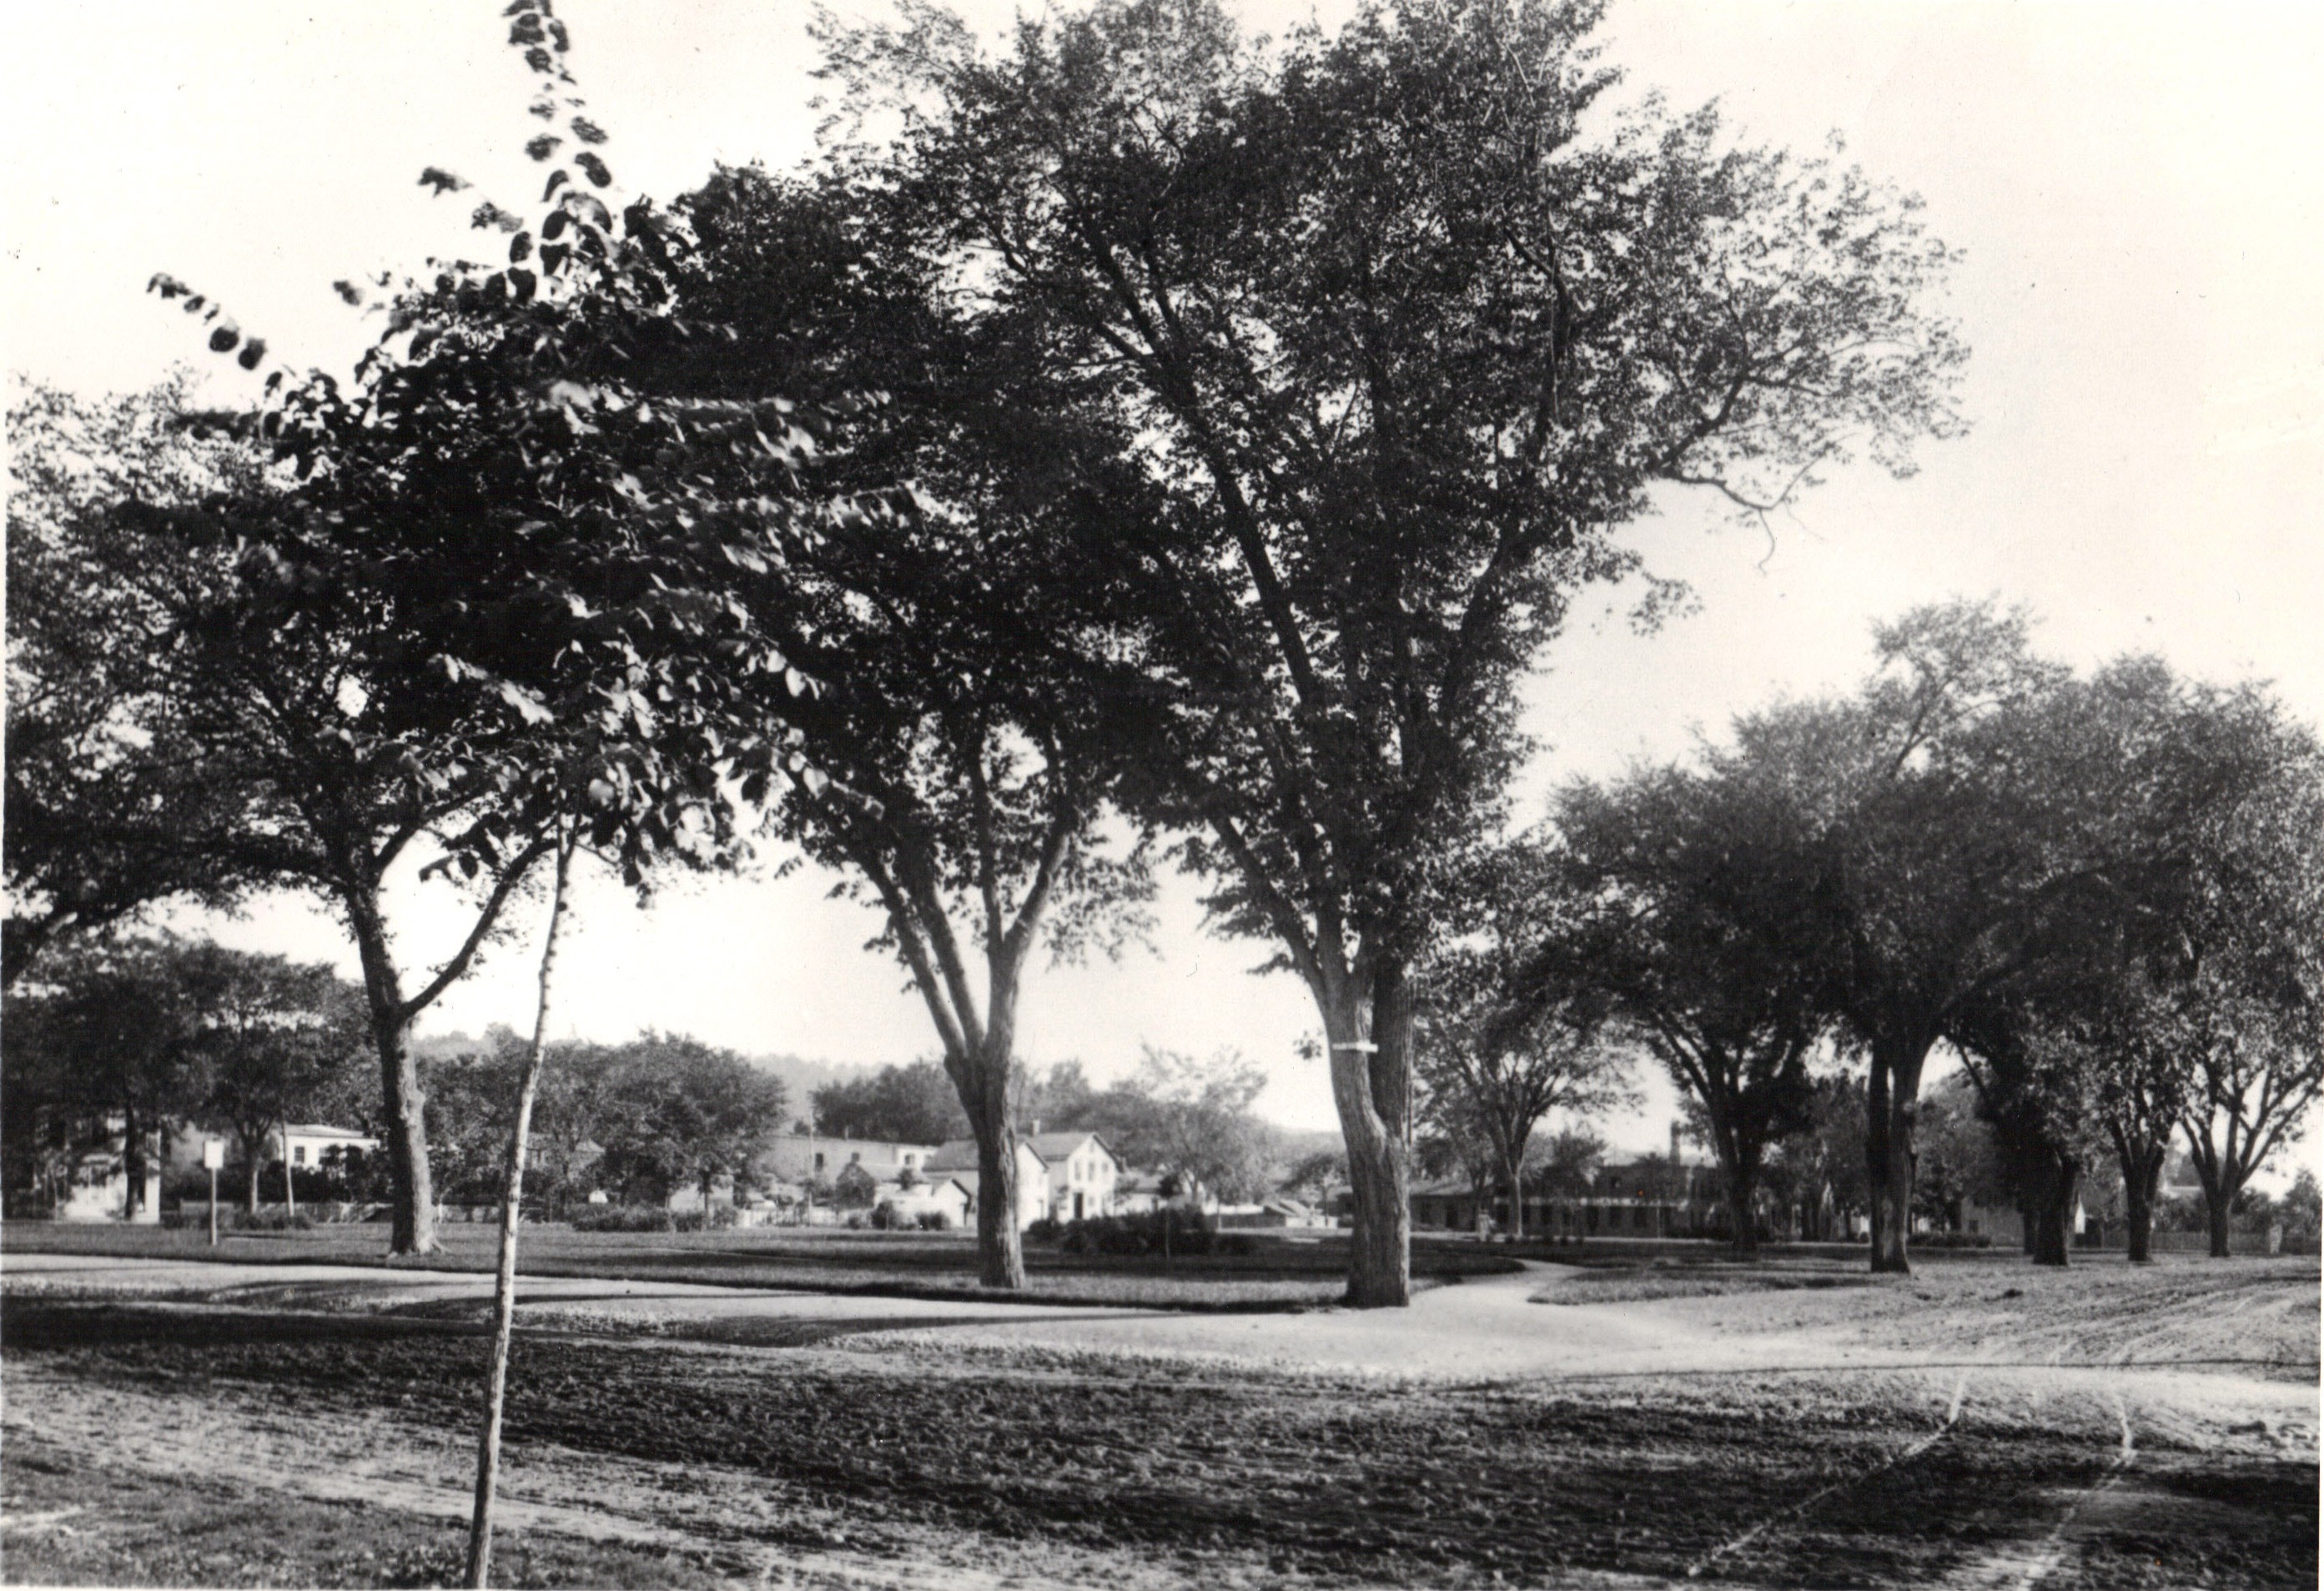 Photo of Village Green showing trees and dirt roads